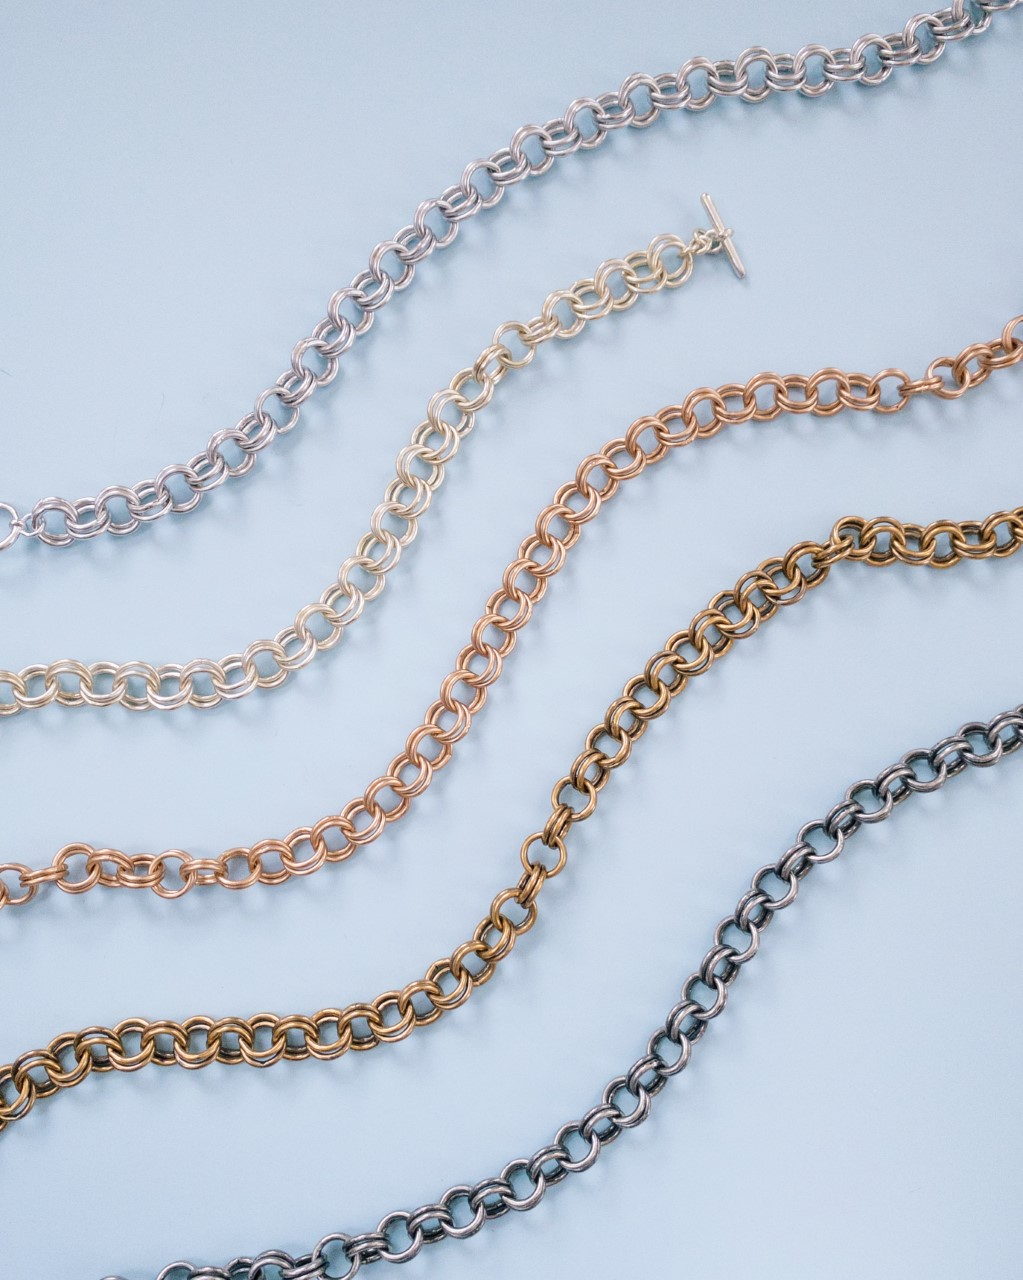 Get a Free Chain Necklace or Bracelet from Kendra Scott